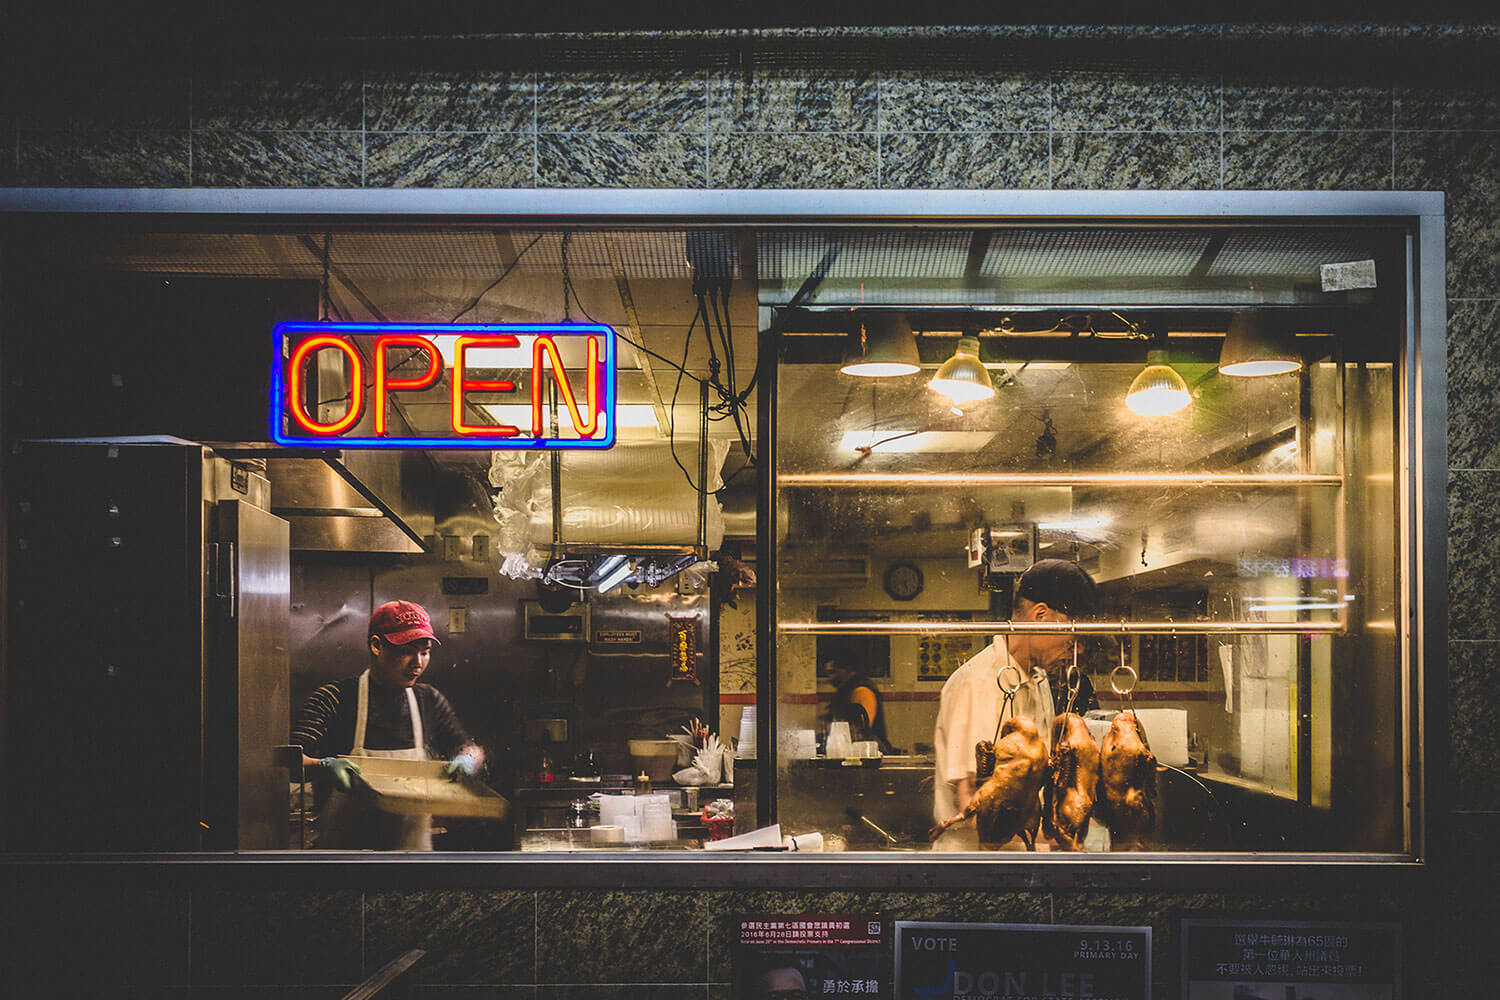 Two people standing in the kitchen of a restaurant in Chinatown, New York. Two roasted ducks and a glowing neon Open sign hang in the window.